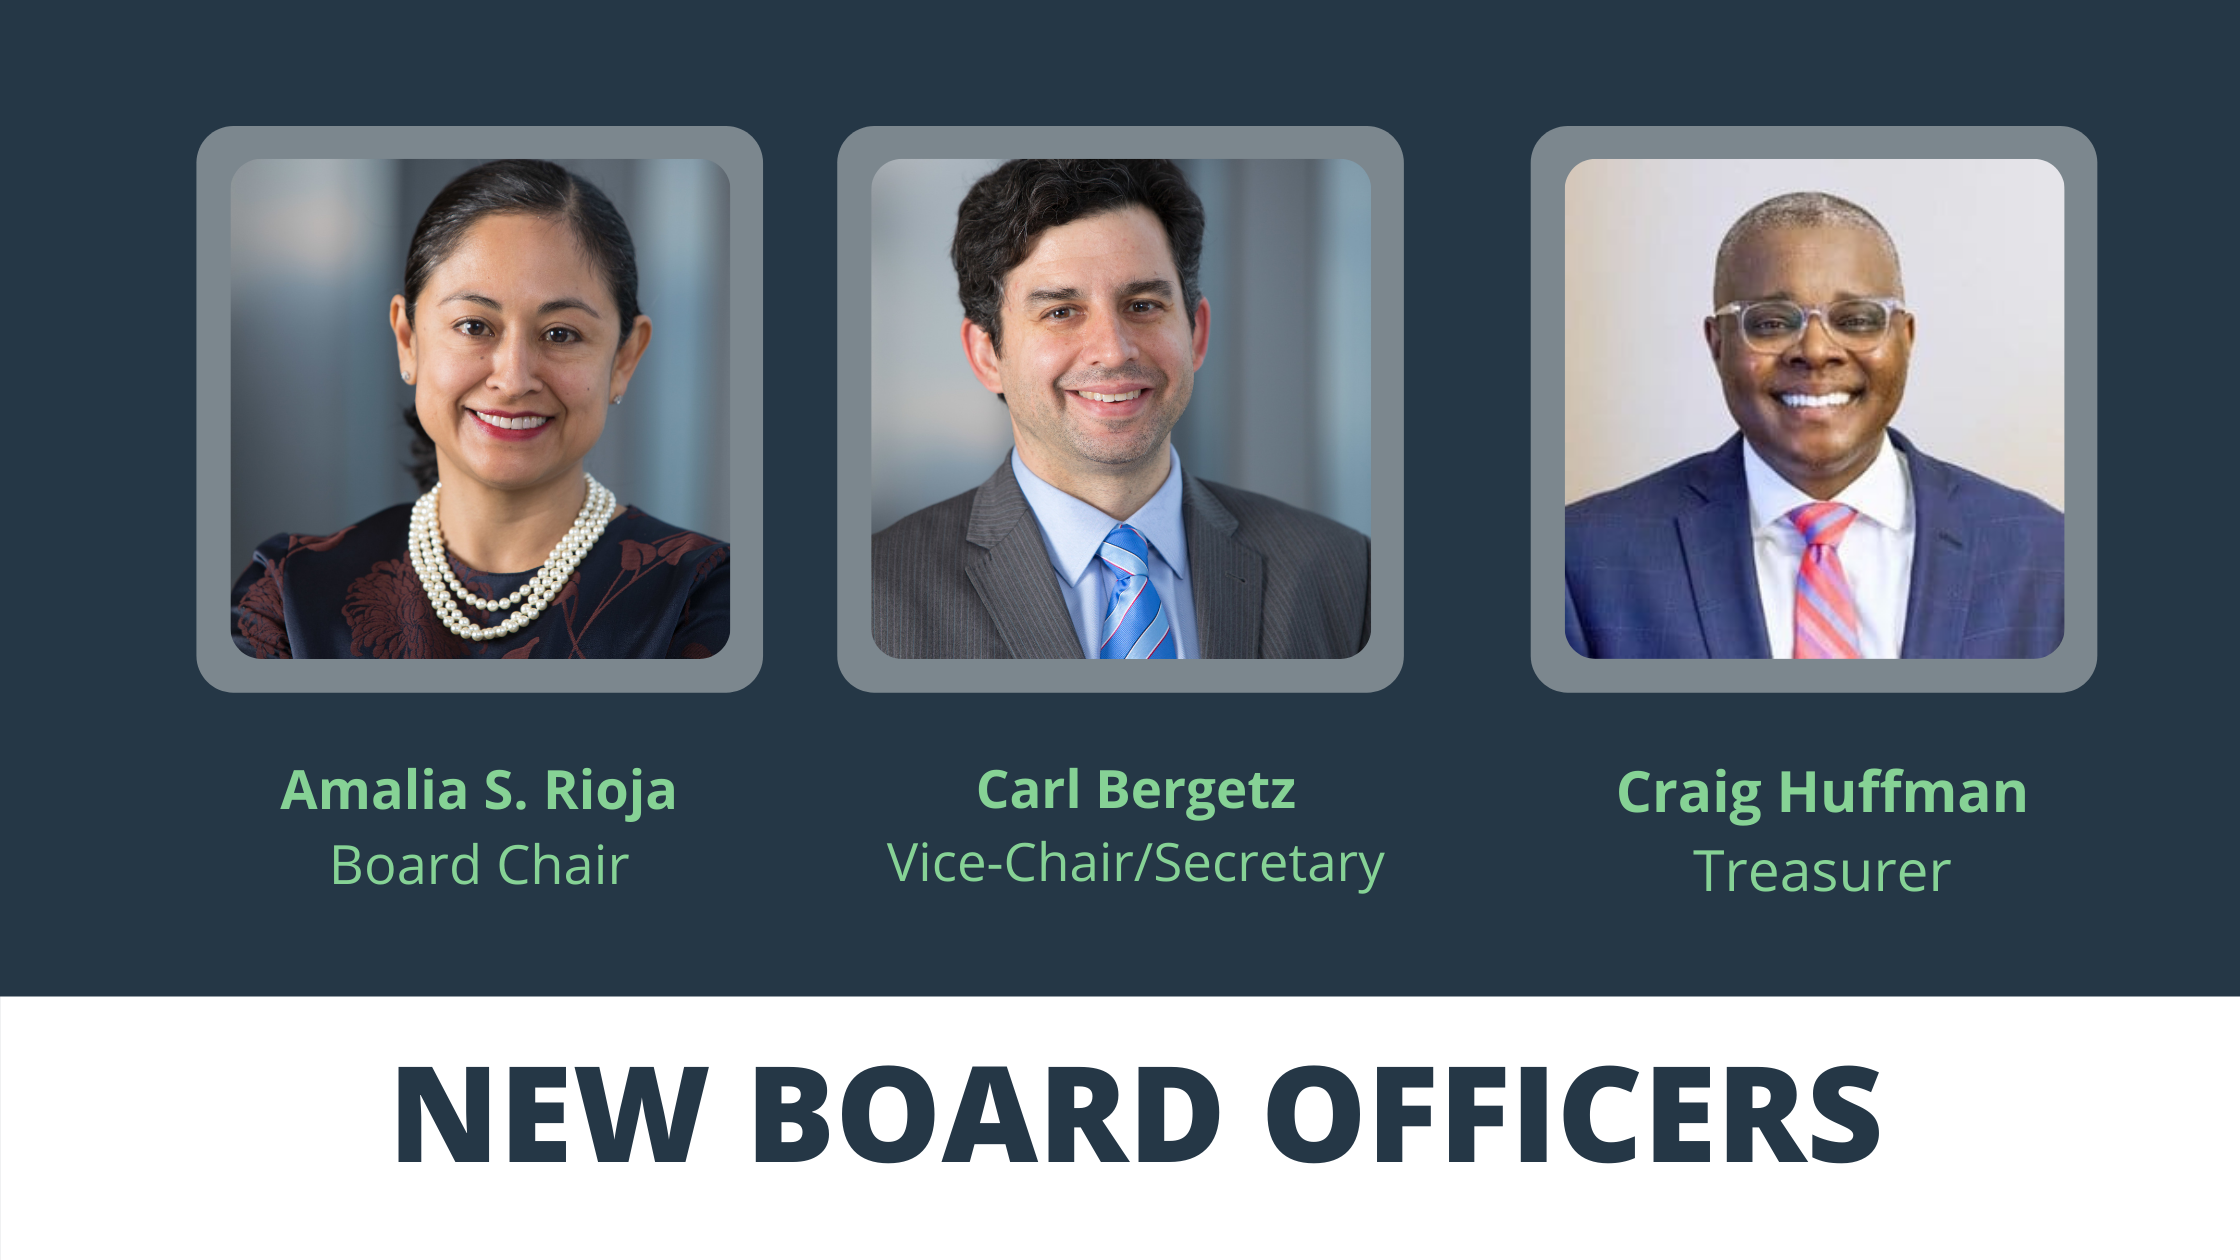 2021 new board officer appointments